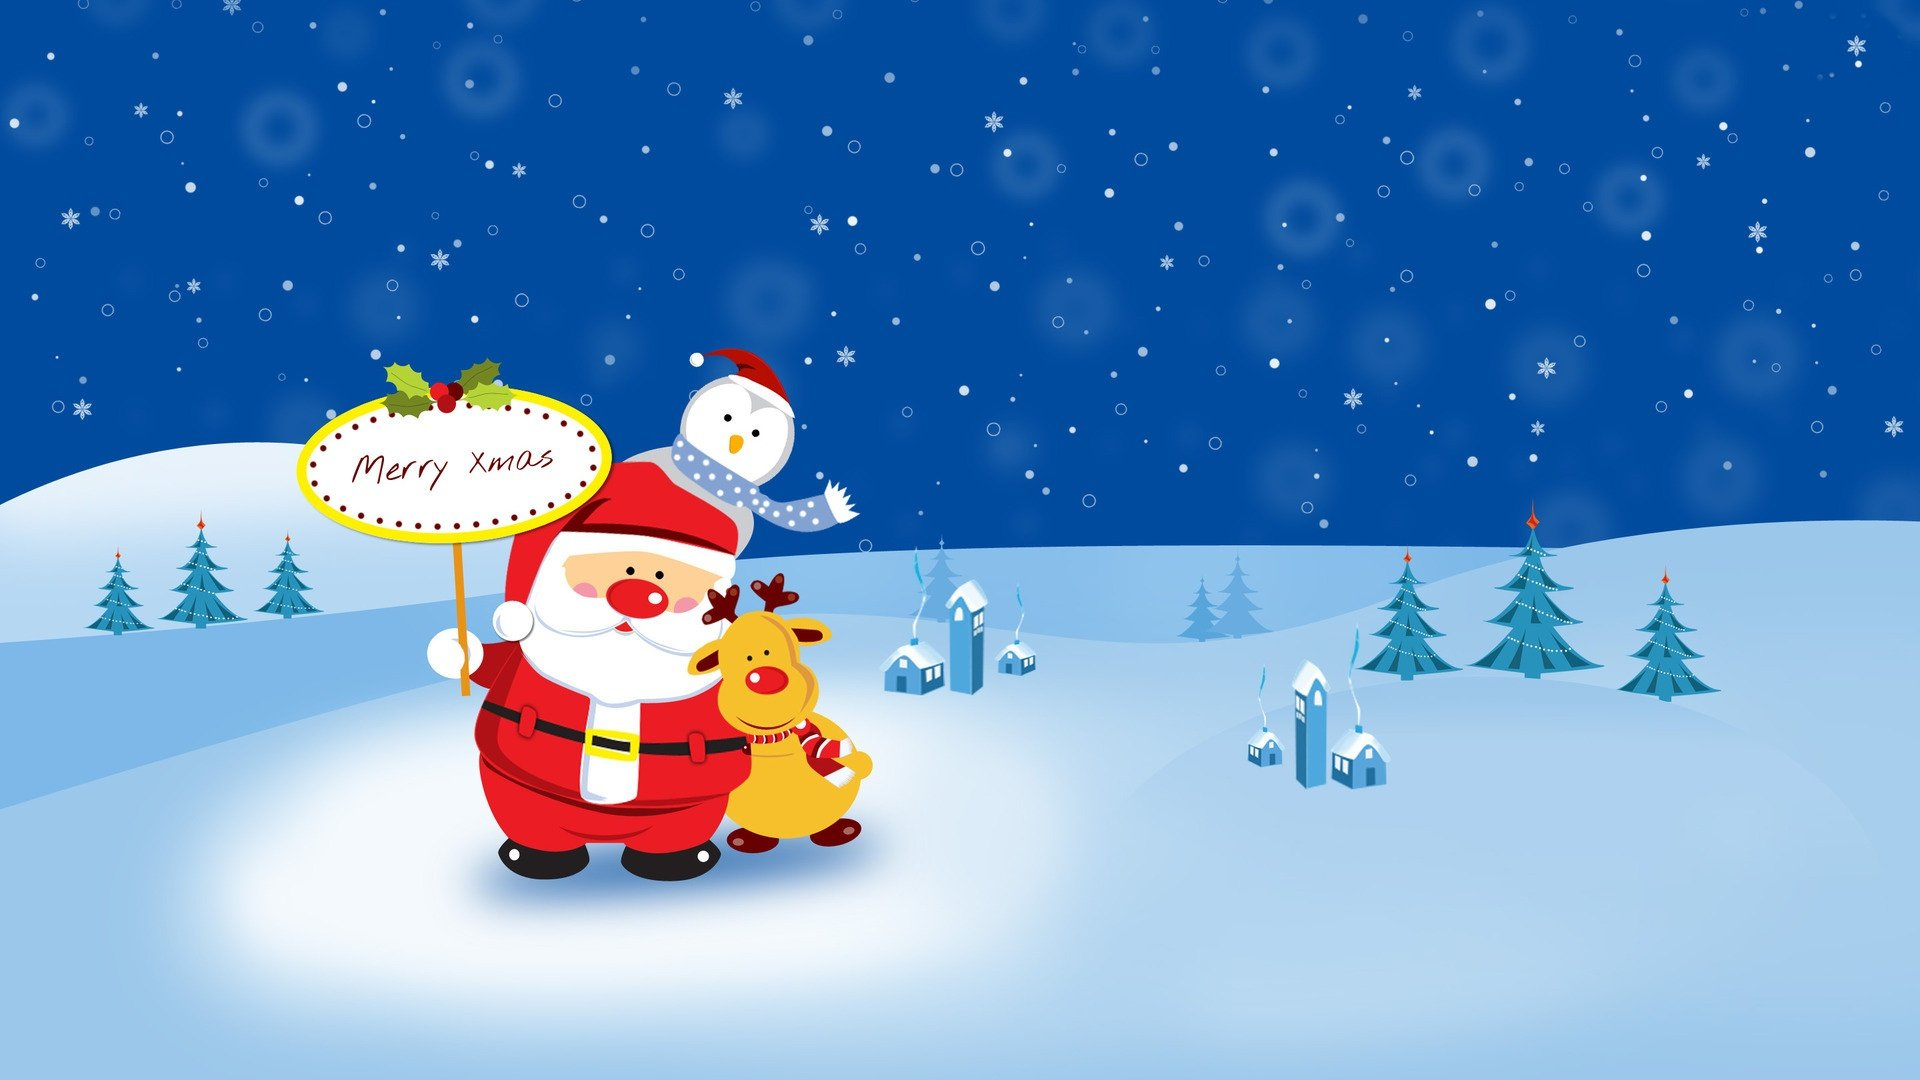 Cute Cartoon Christmas Wallpaper 10560 Hd Wallpapers 1920x1080